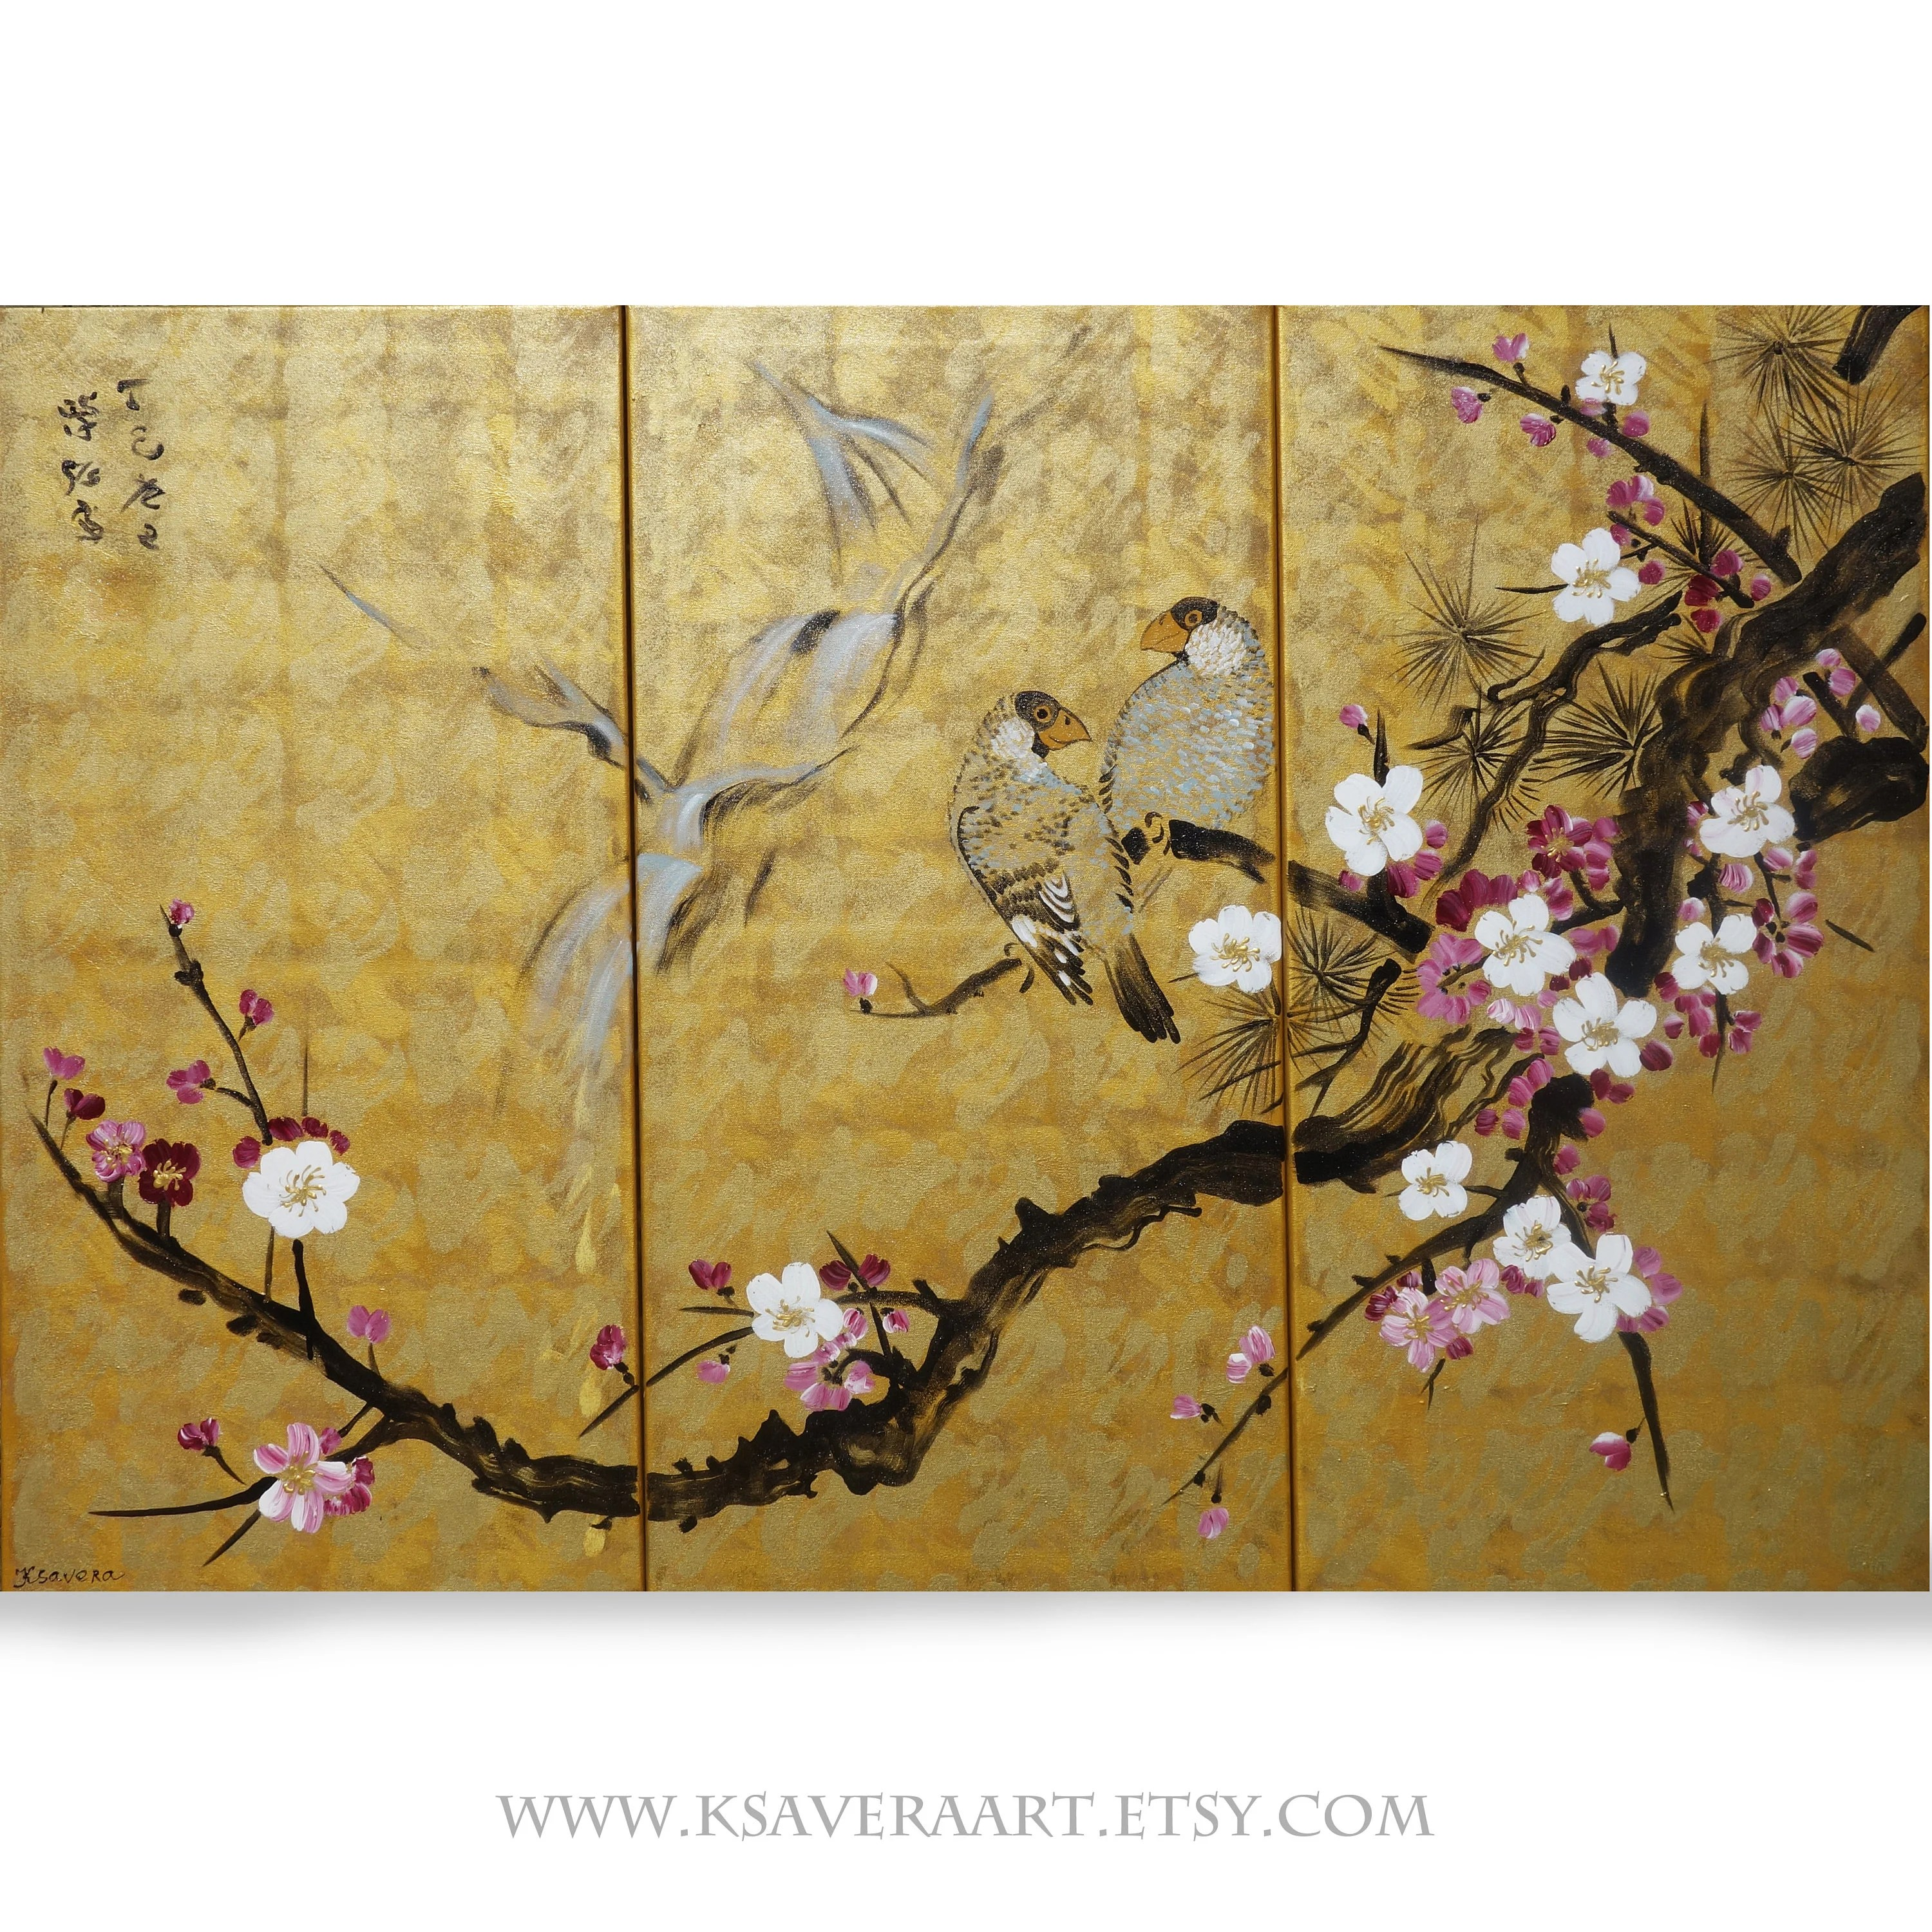 Bilder Auf Leinwand Japan Japan Art Cherry Blossom And Love Birds Japanese Style Painting J130 Large Paintings 100x150x2 Cm Acrylic Gold Wall Art By Artist Ksavera